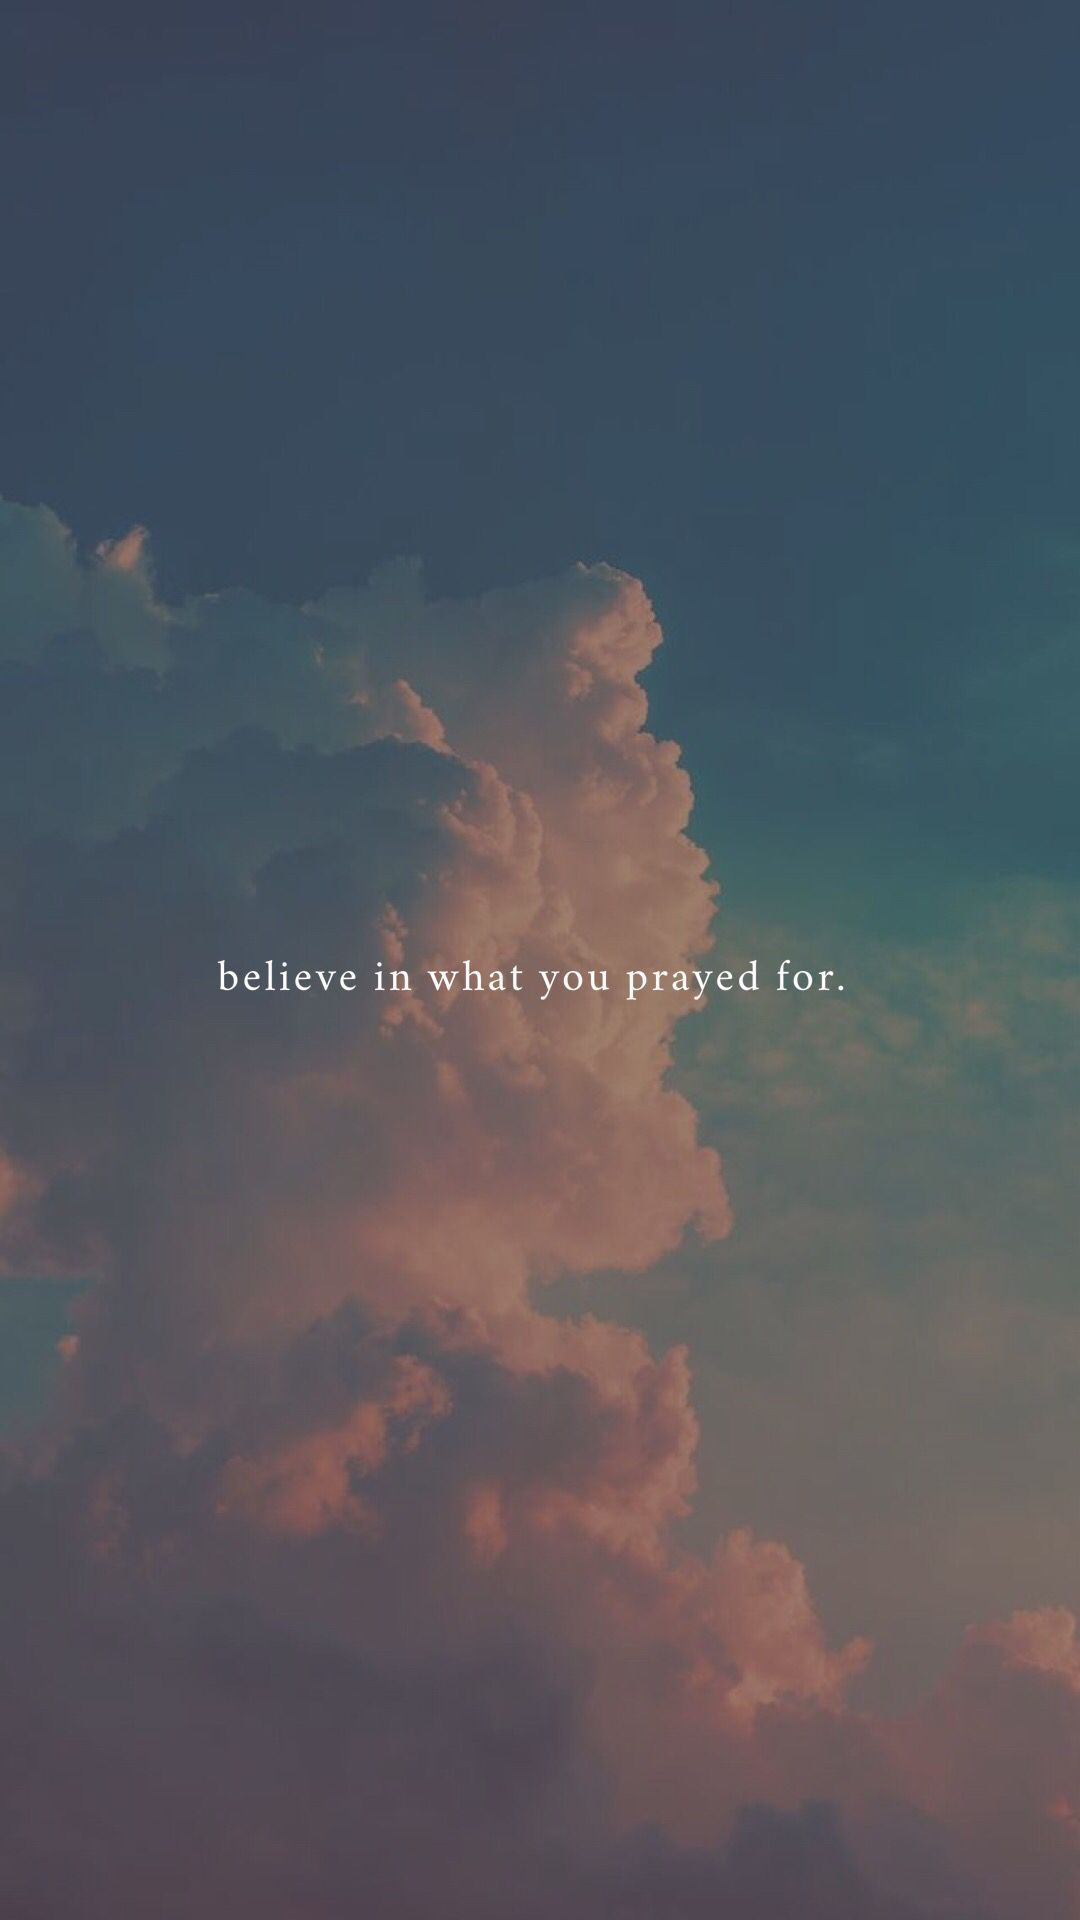 """believe in what you prayed for."" #phonewallpaperquotes ""believe in what you prayed for."""